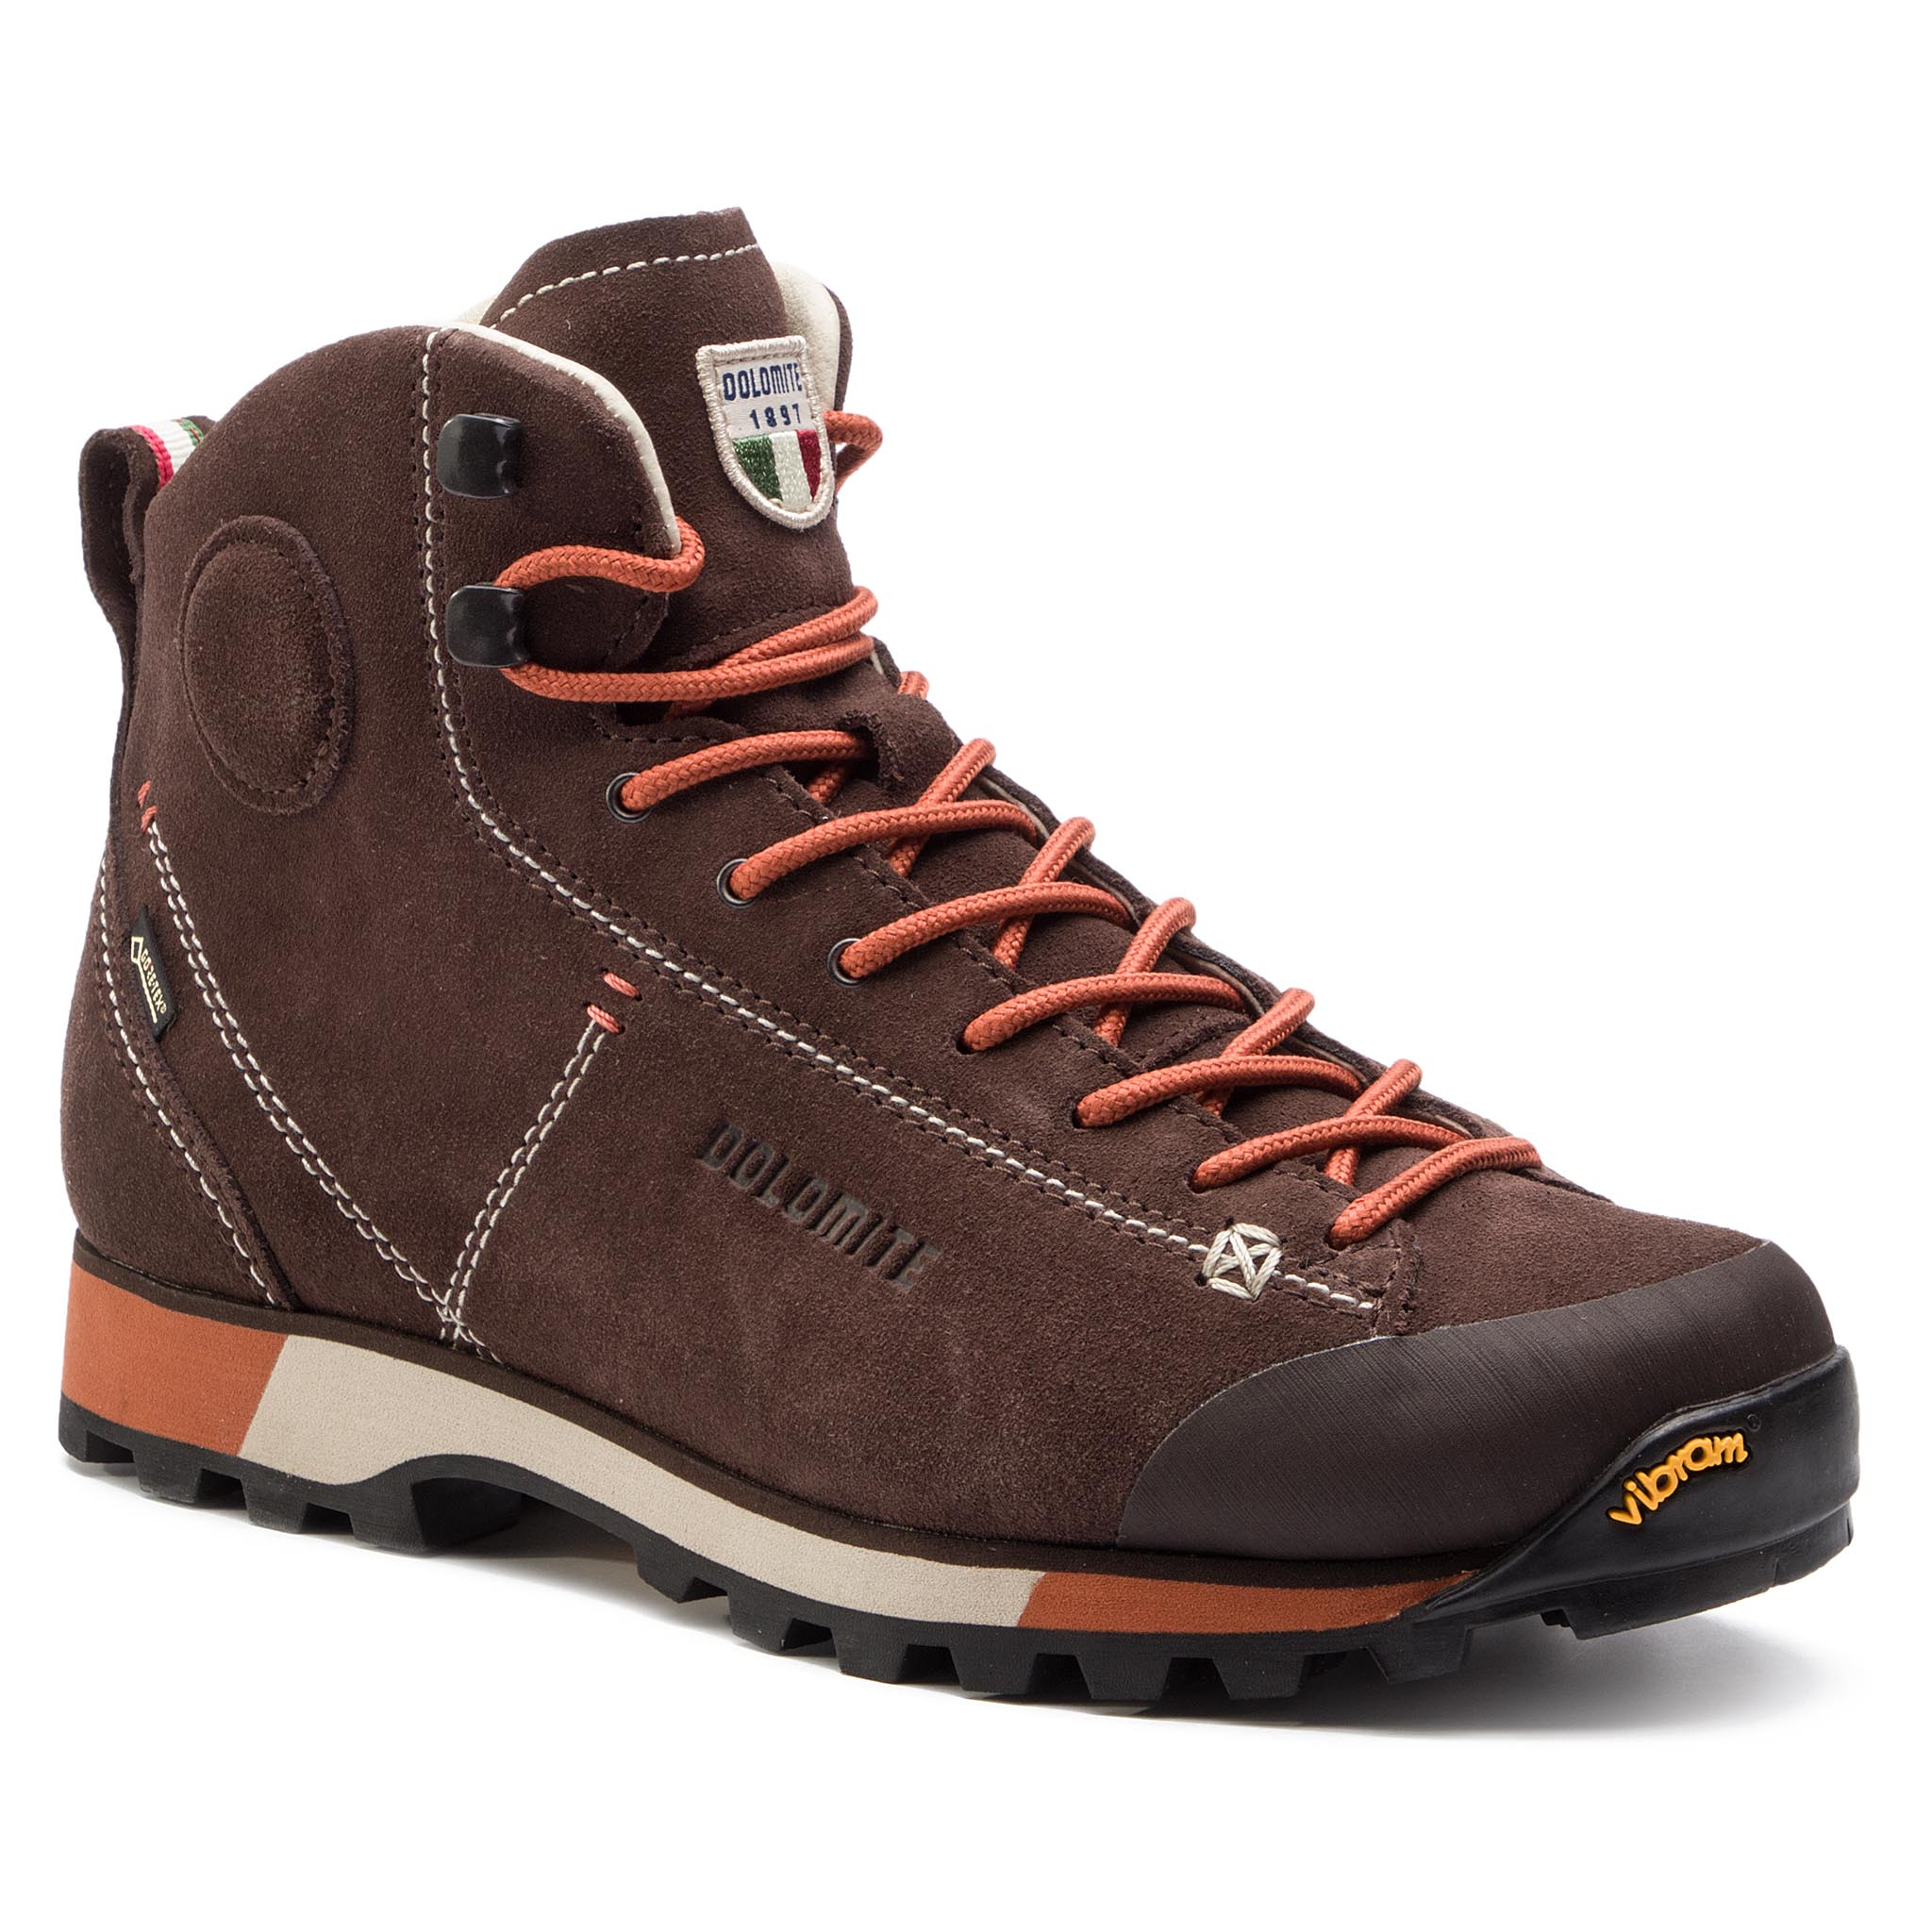 Trekkings Dolomite - Cinquantaquattro Hike Gtx Gore-Tex 269482-1137 Dark Brown/Red imagine epantofi.ro 2021